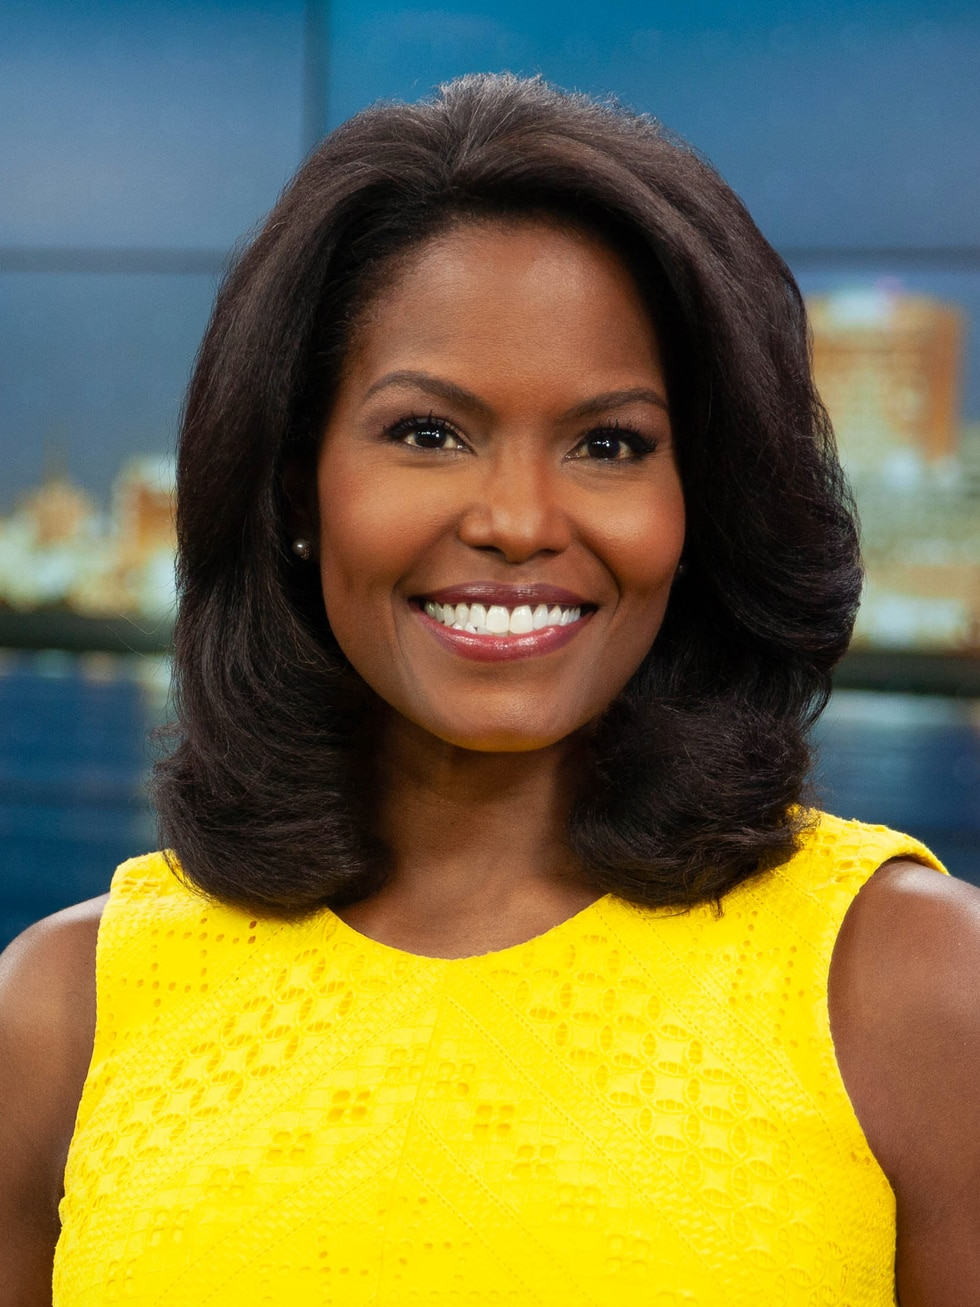 Louisiana native and veteran journalist Tisha Powell will join the WAFB 9News team in August...